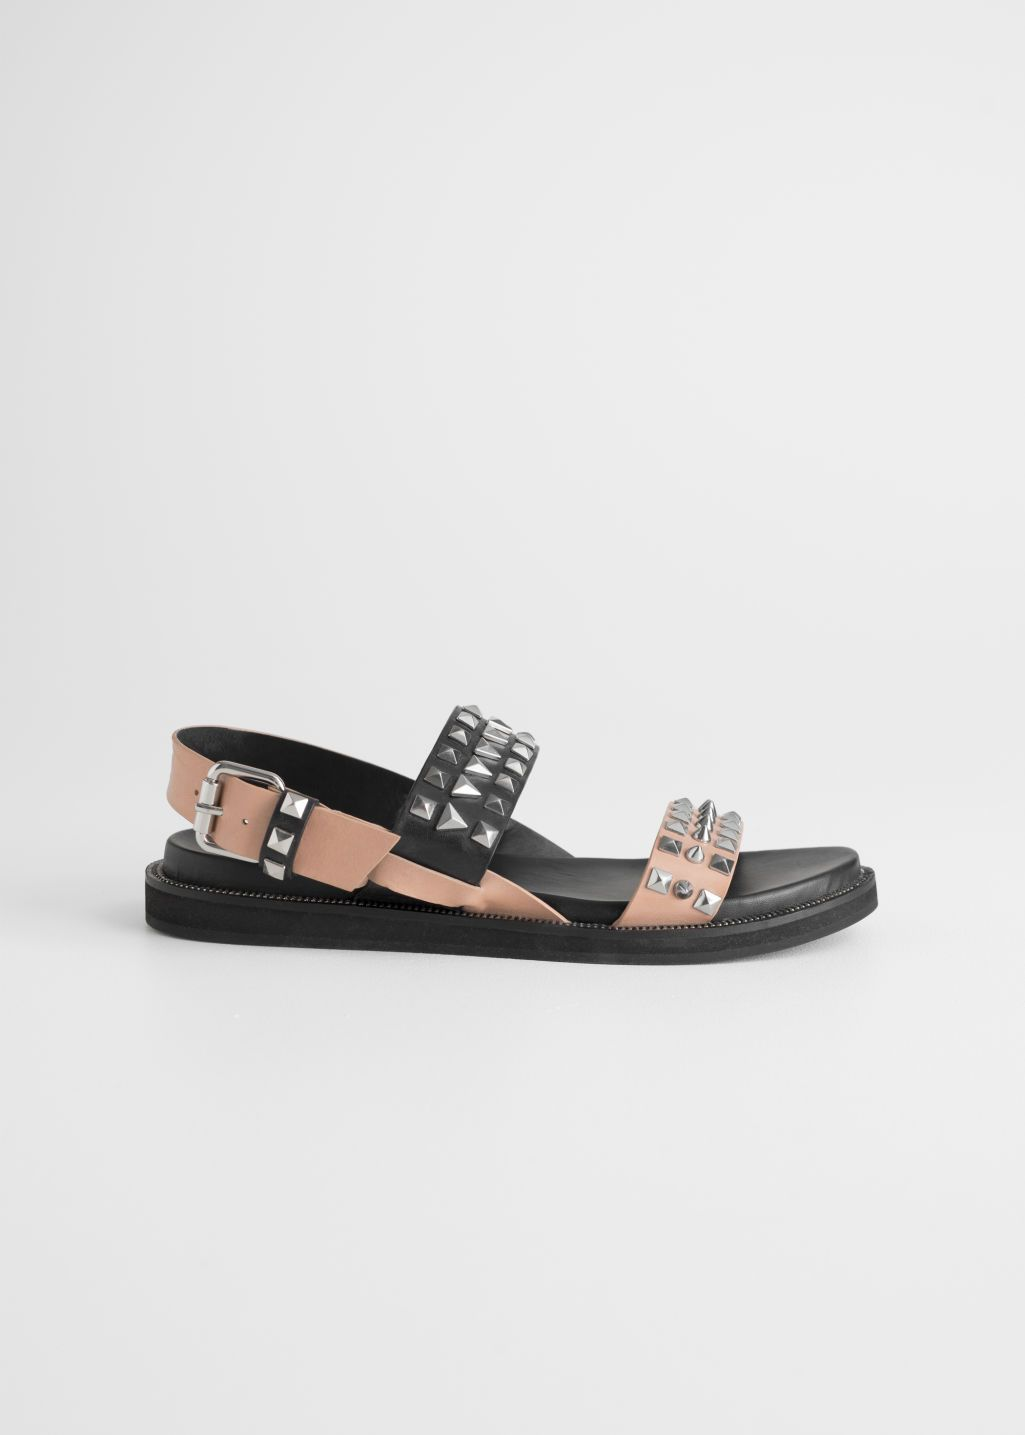 Two Toned Studded Sandals   Studded sandals, Leather sandals